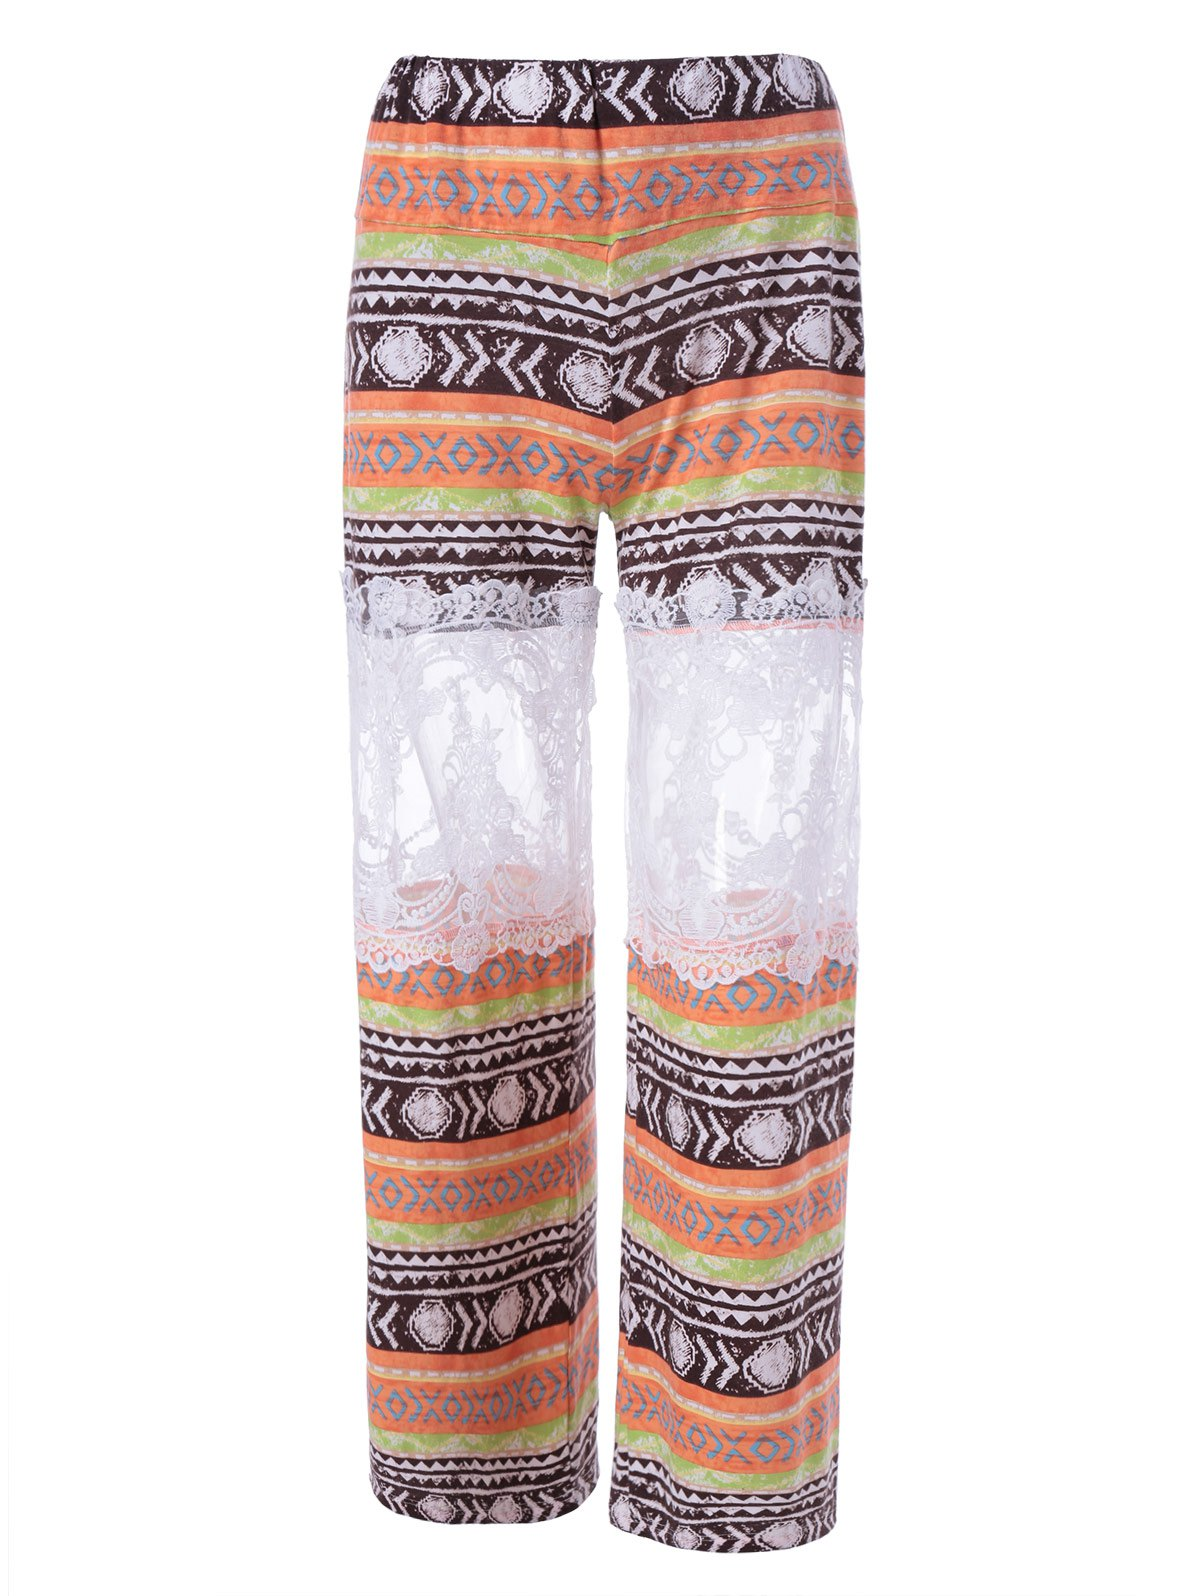 Stylish Printed Lace Stitching Pants For Women - COLORMIX L